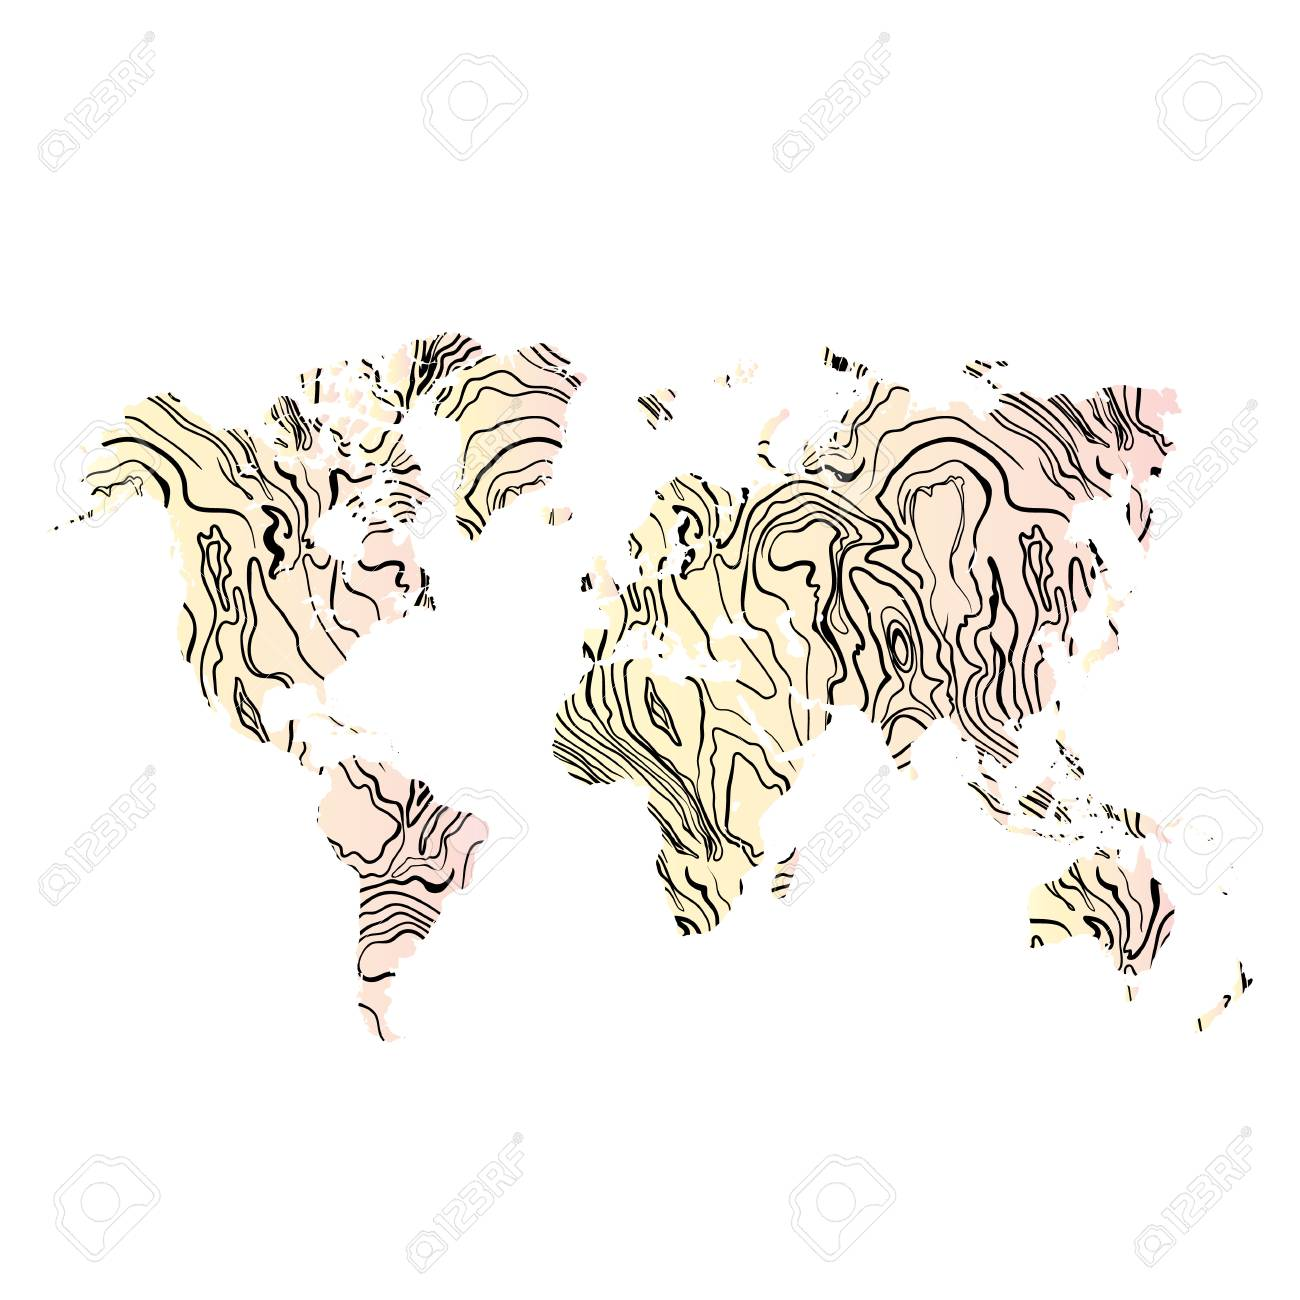 World Map Hand Drawn Textured In Wood Illustration. Royalty Free ...